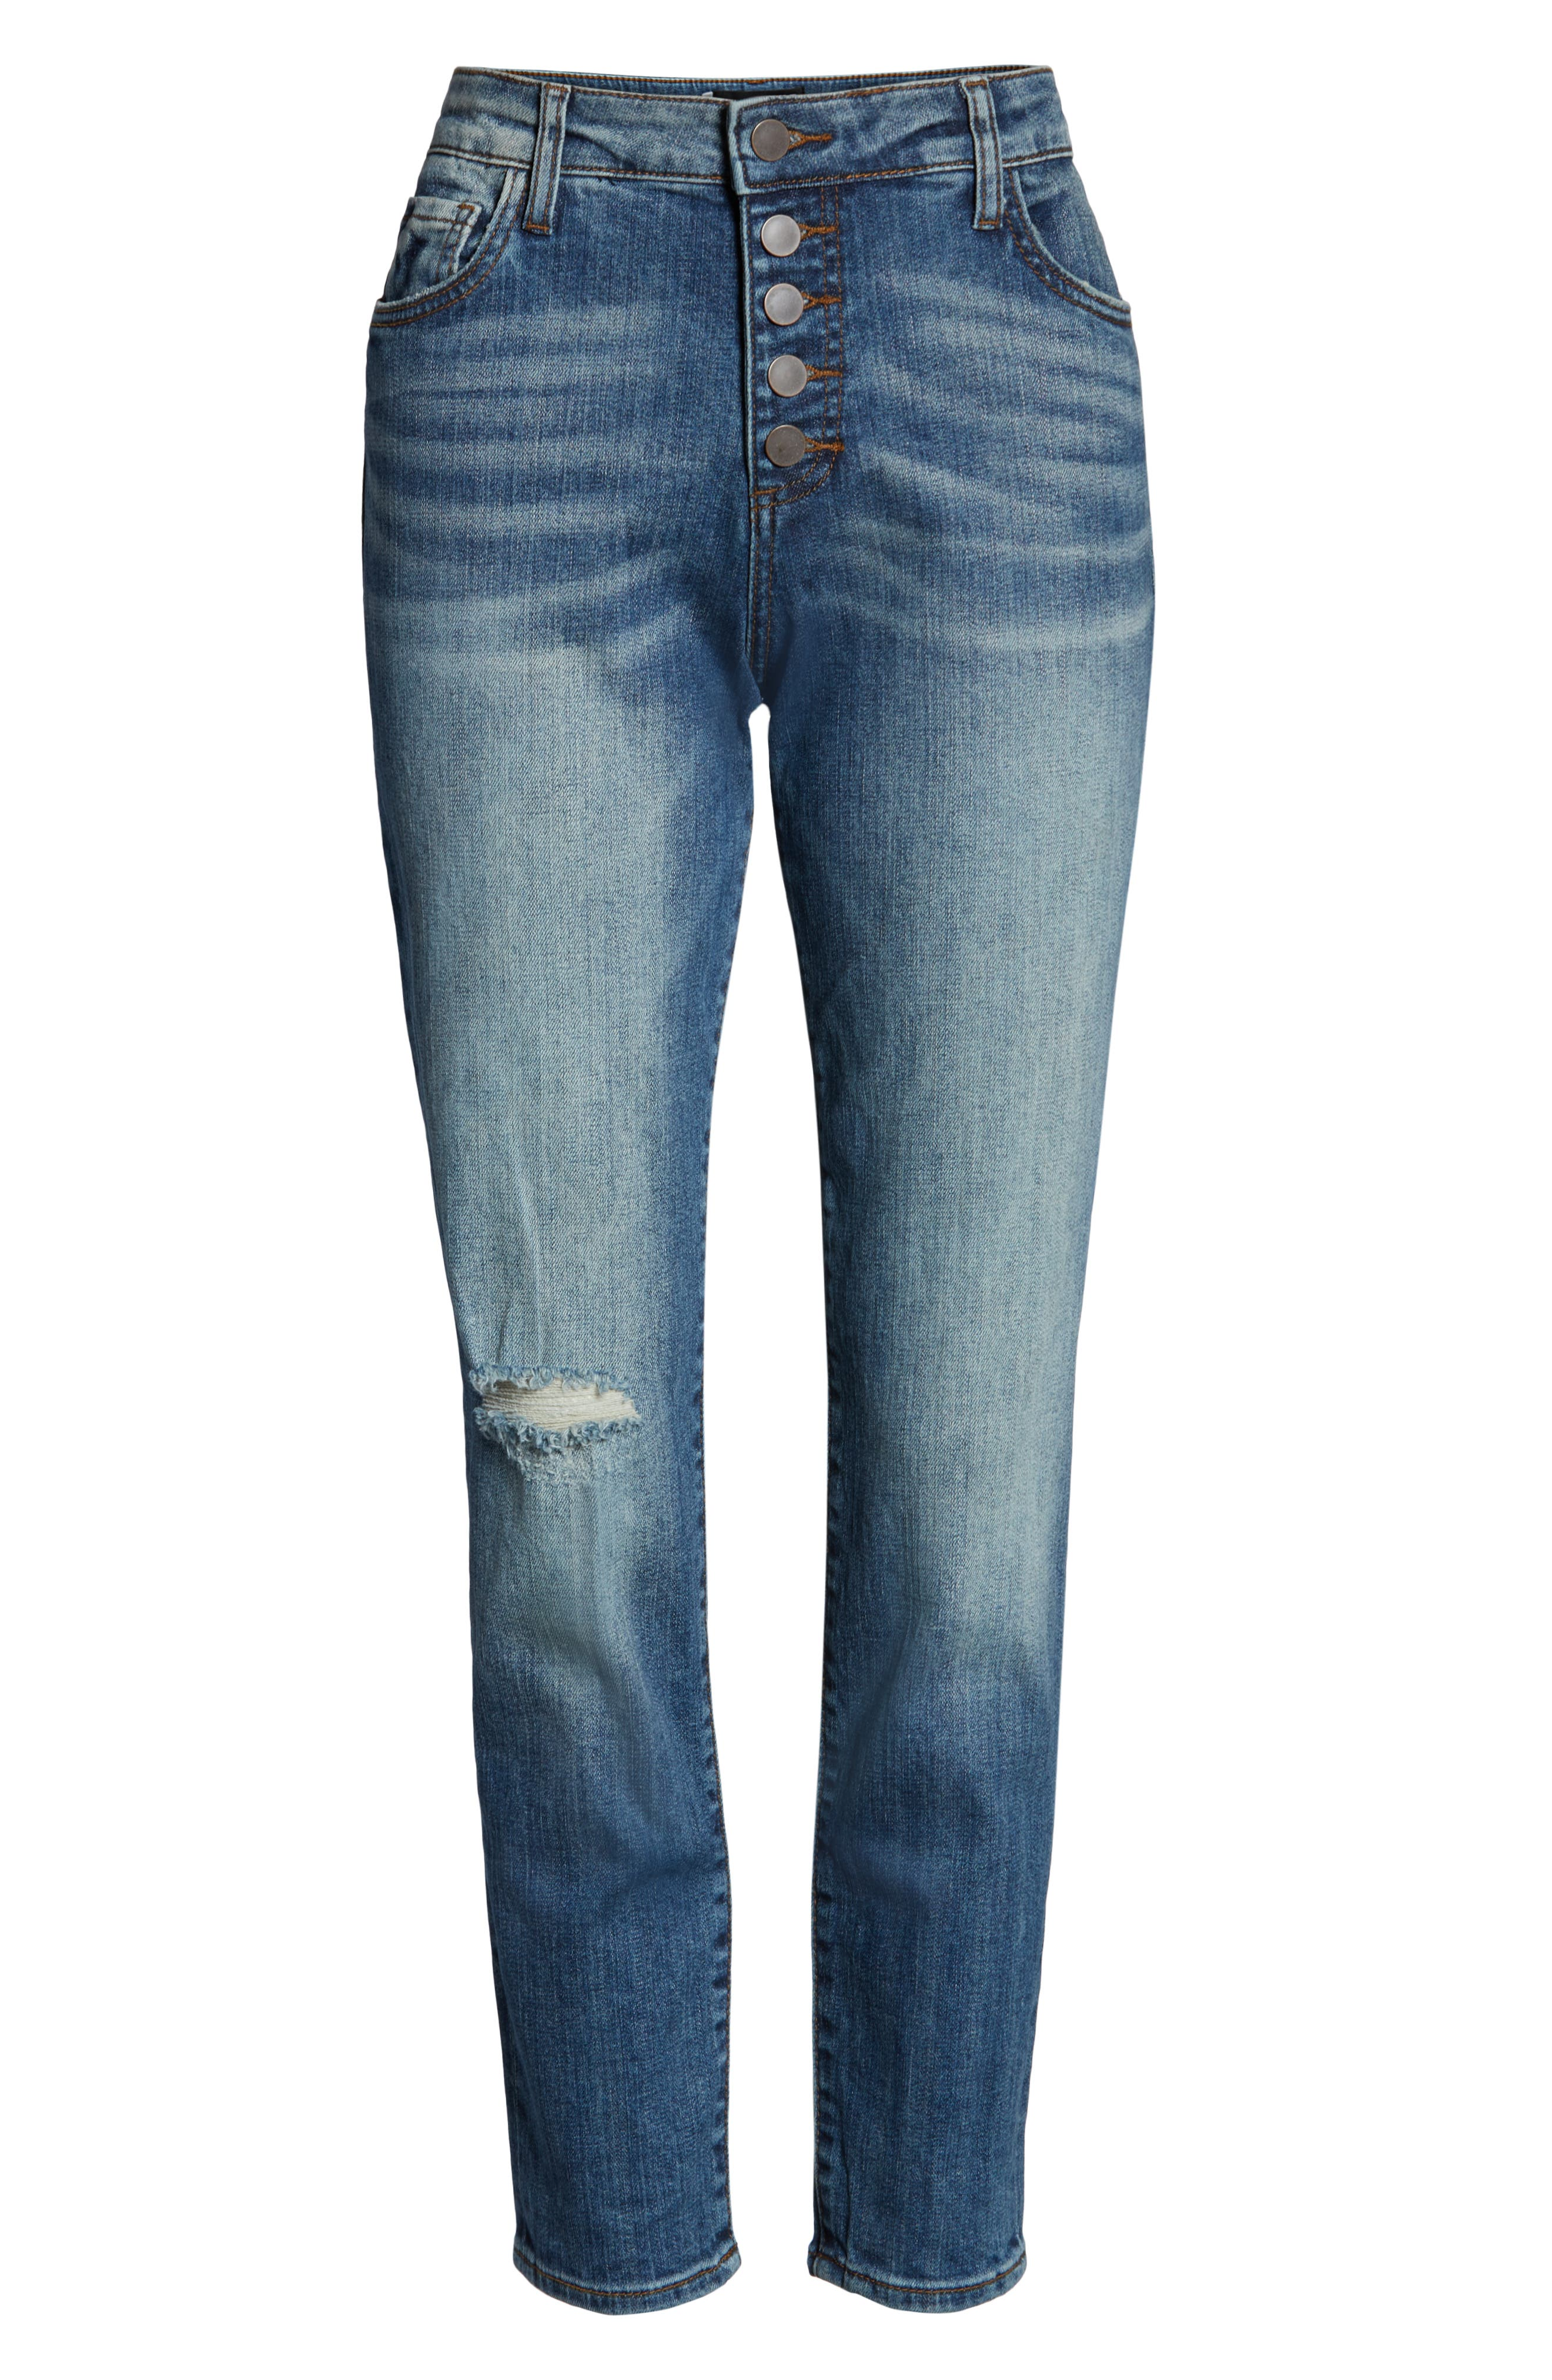 KUT FROM THE KLOTH, Donna Ripped High Waist Ankle Skinny Jeans, Alternate thumbnail 6, color, 402